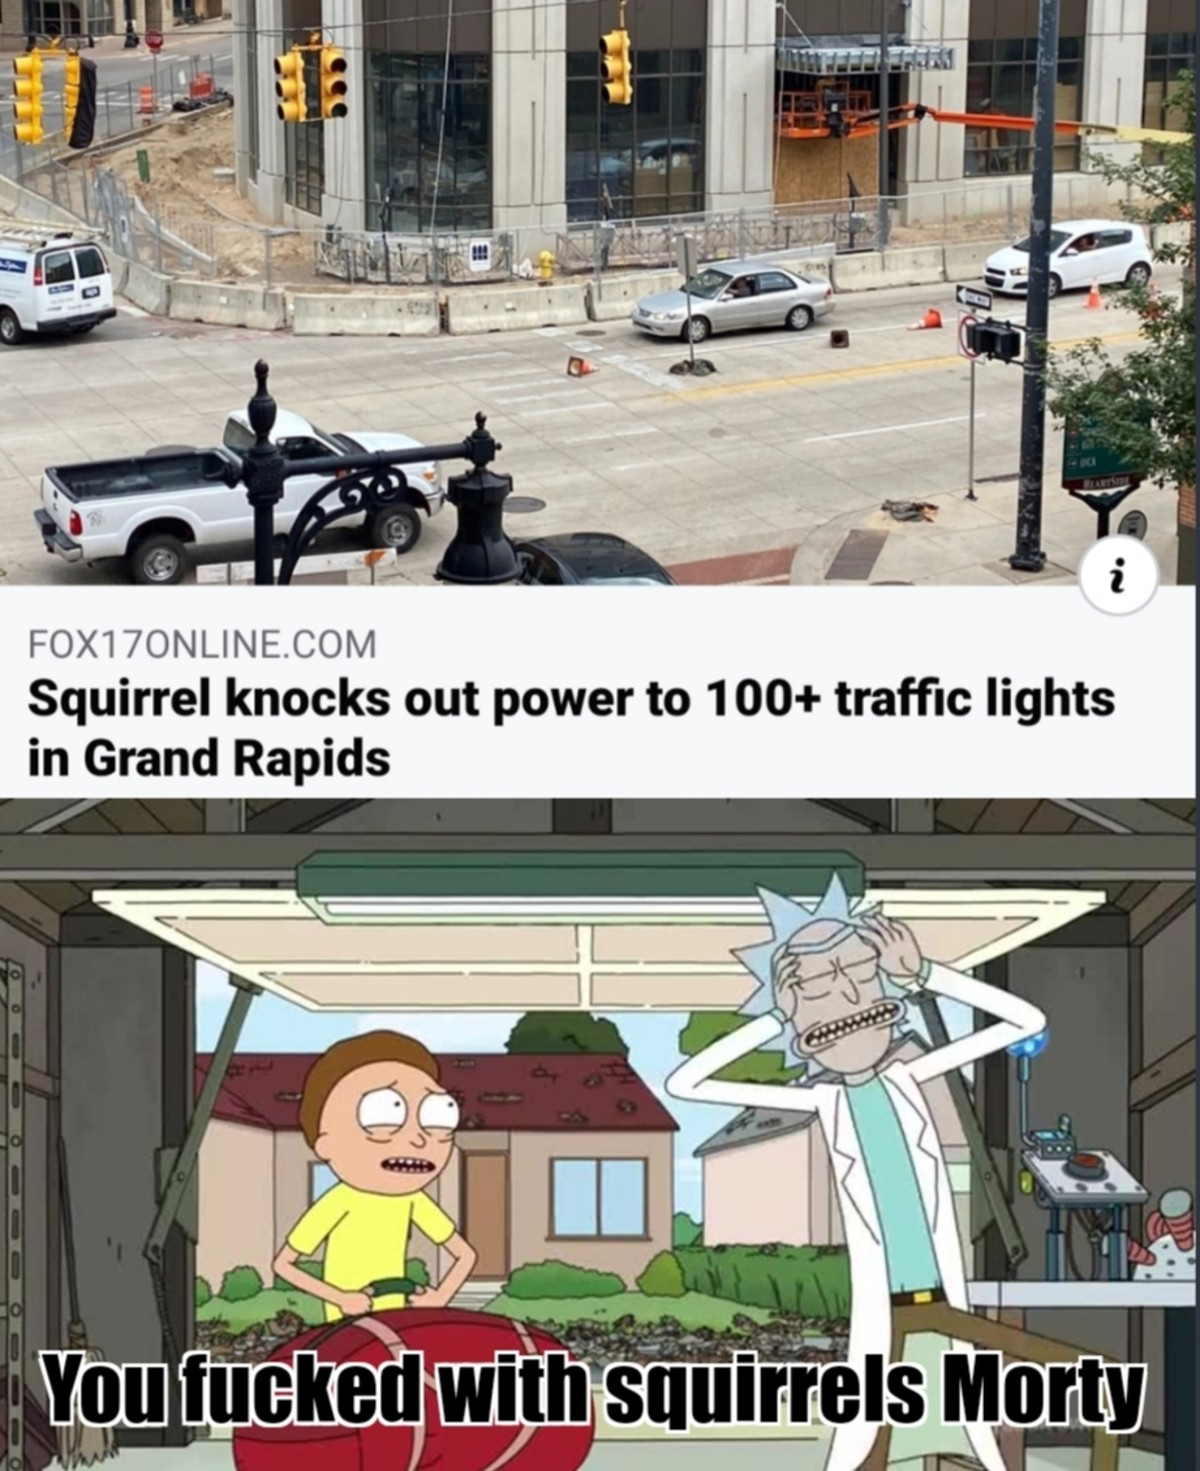 Way To Go Morty. .. with squirrels they back